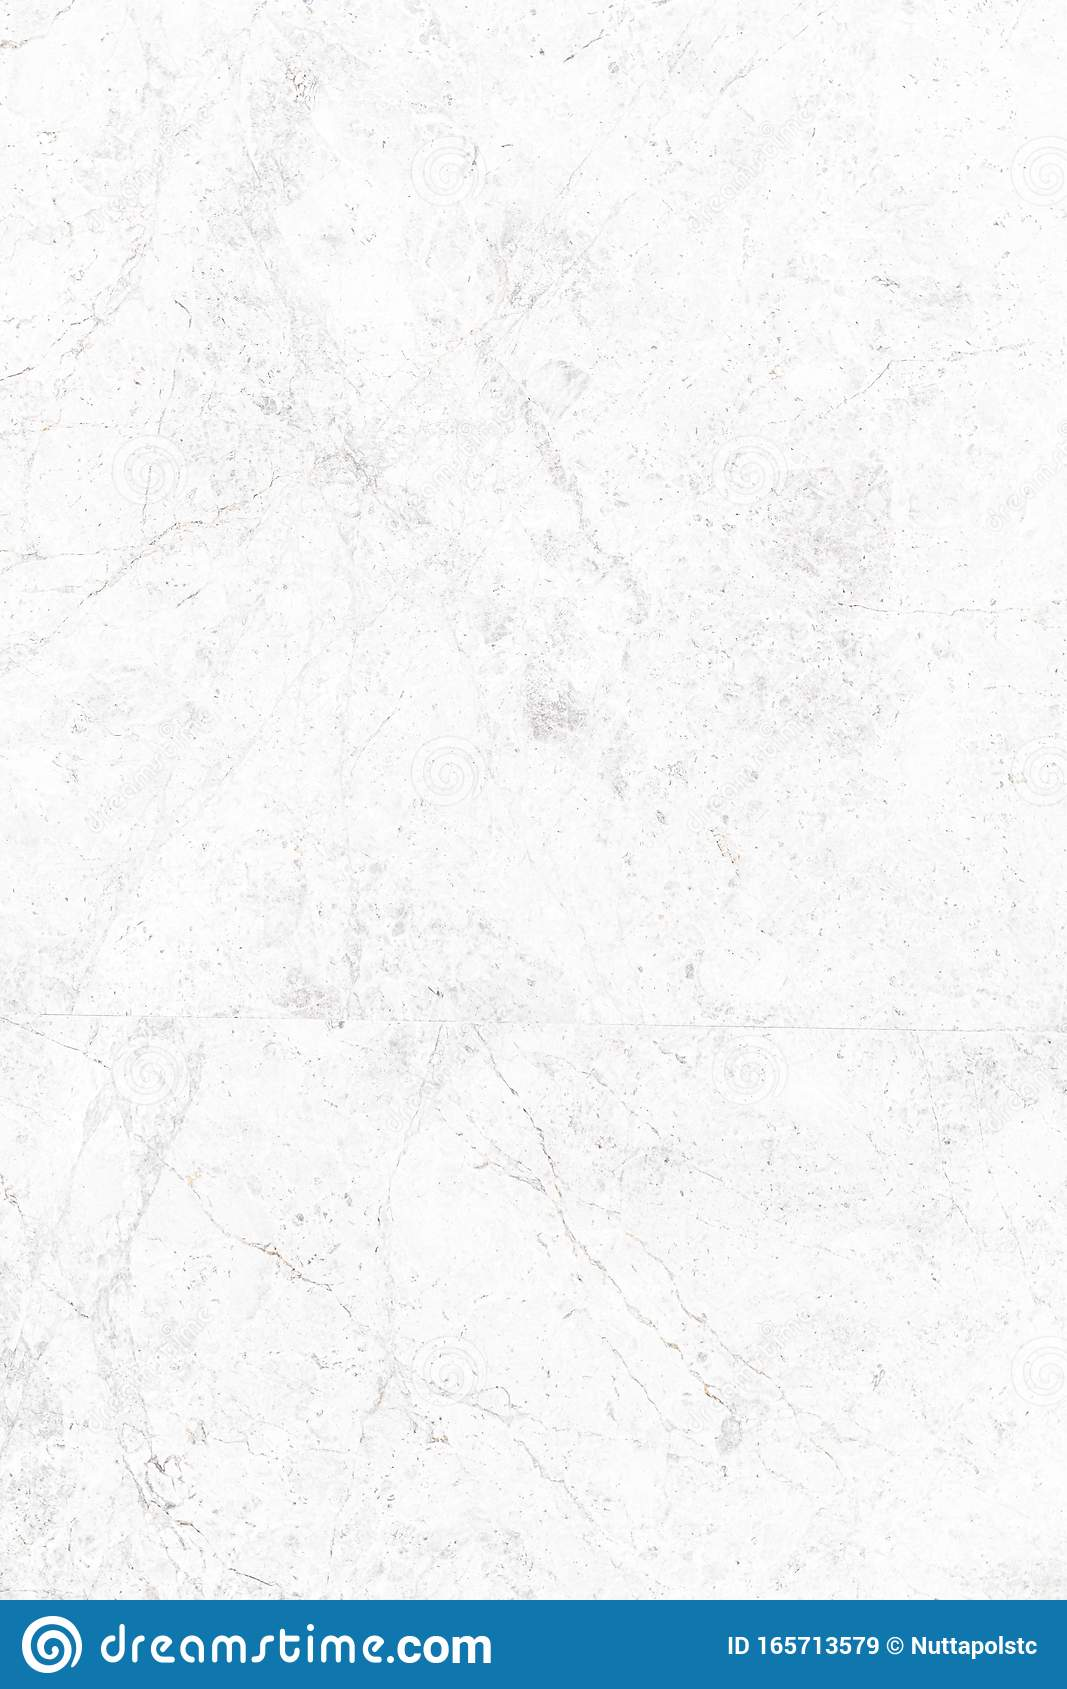 Seamless White Marble Texture Abstract Background Pattern With High Resolution Stock Image Image Of Deluxe Decorative 165713579